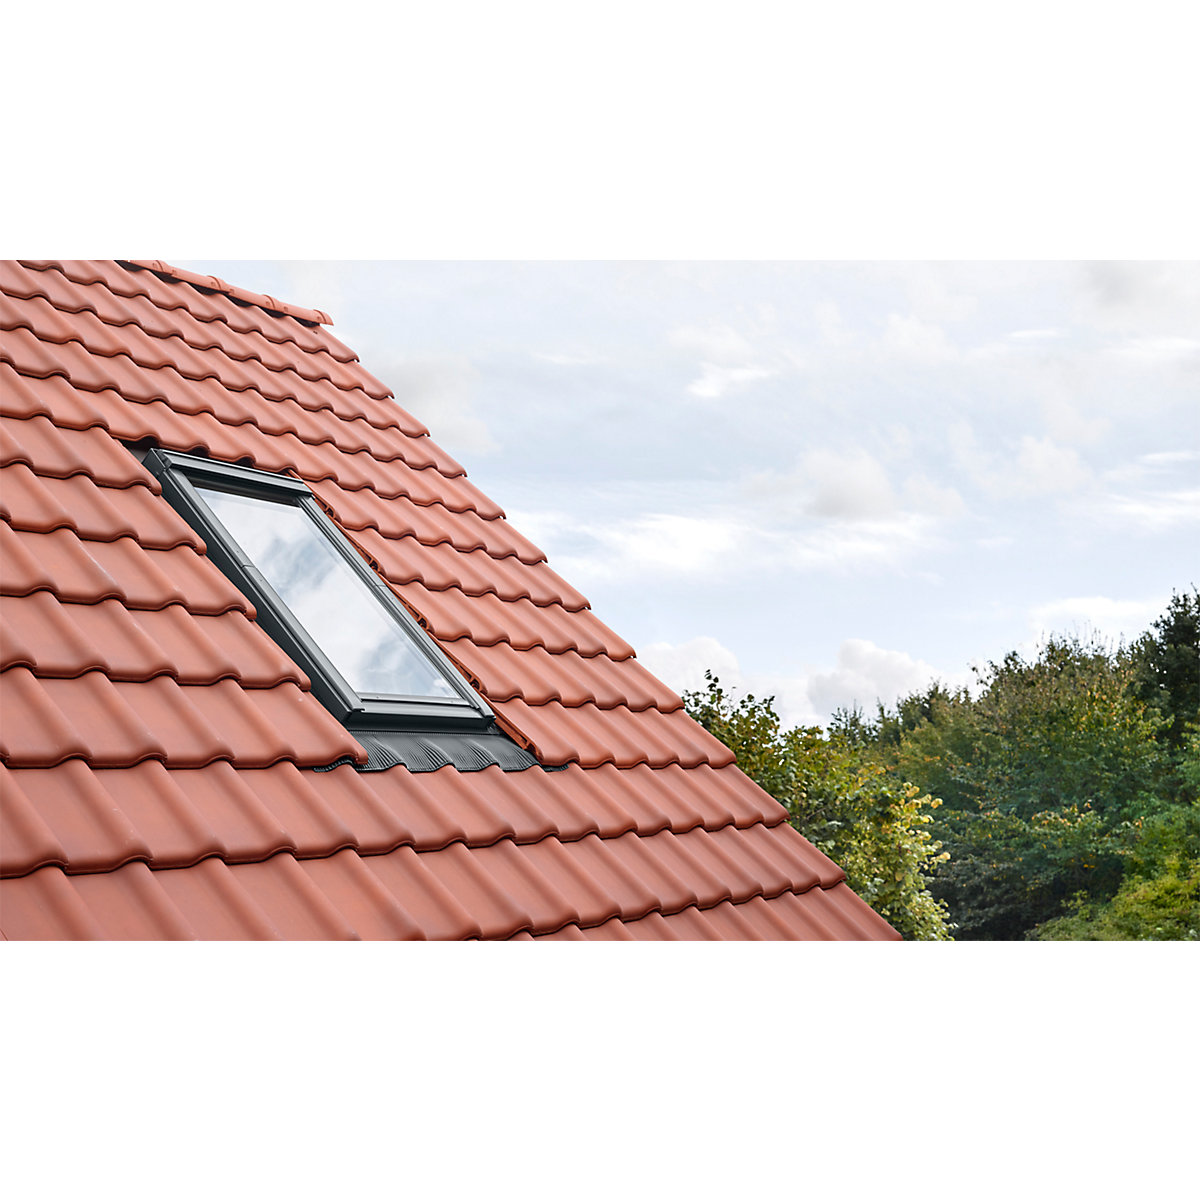 velux ggl mk04 finest velux shl mk with velux ggl mk04 beautiful darkona skylight blinds for. Black Bedroom Furniture Sets. Home Design Ideas